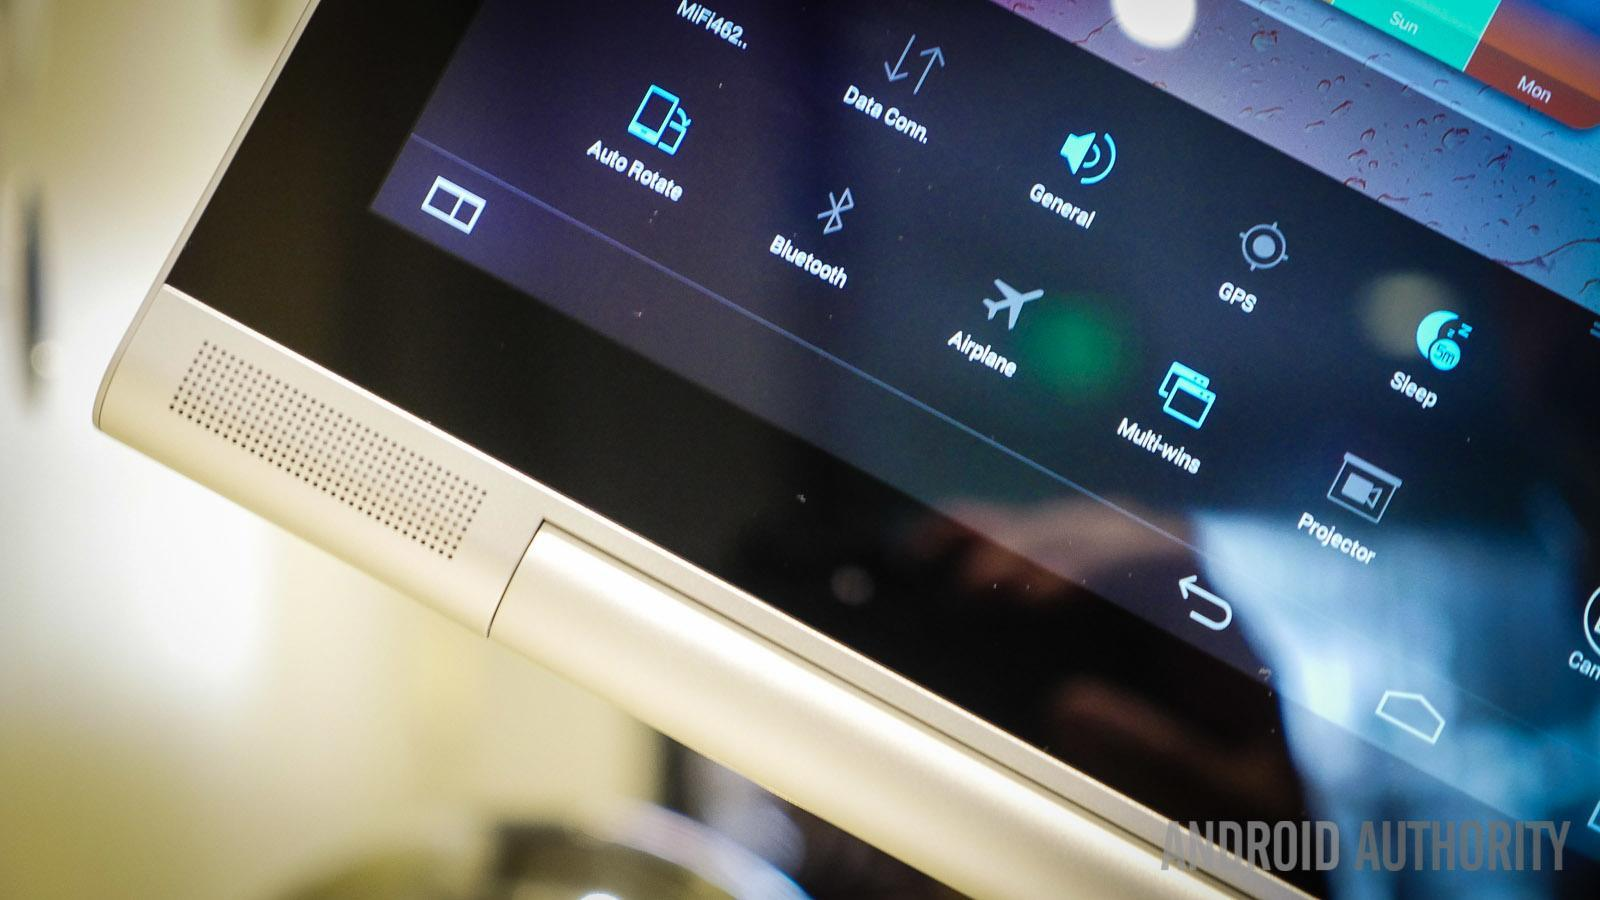 lenovo-yoga-tablet-2-pro-first-look-aa-10-of-19